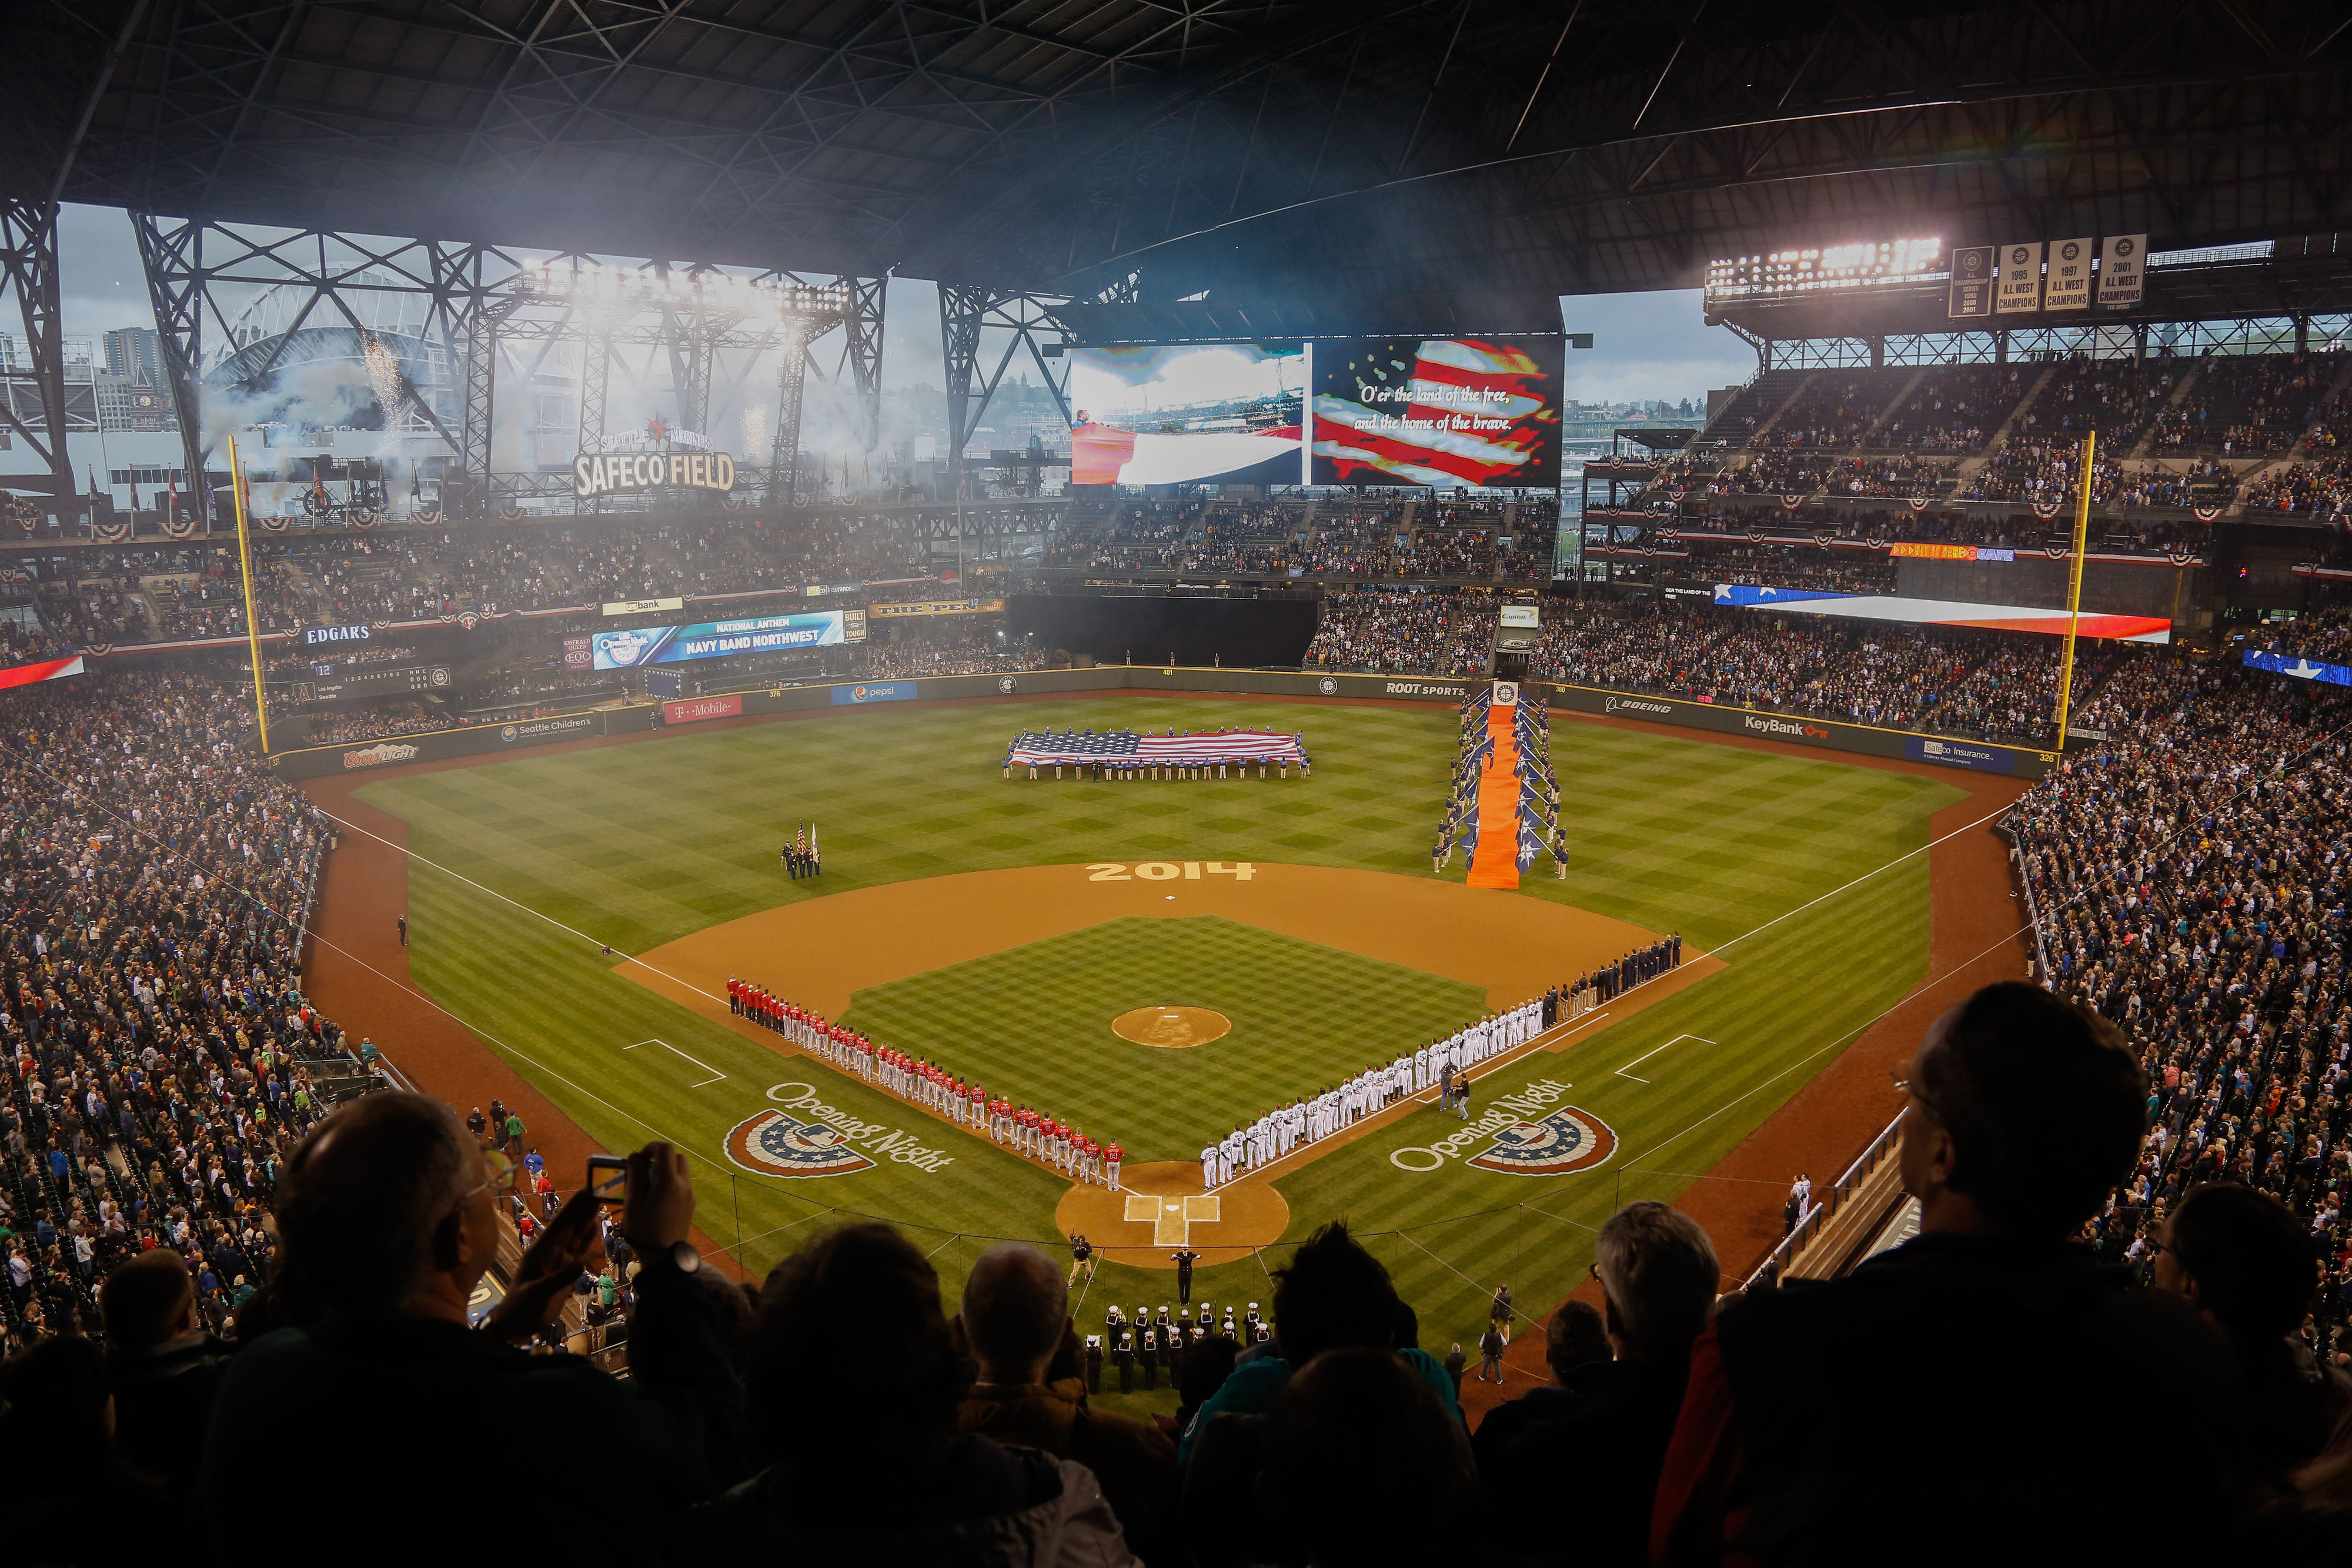 Opening Day at Safeco Field, April 8, 2014